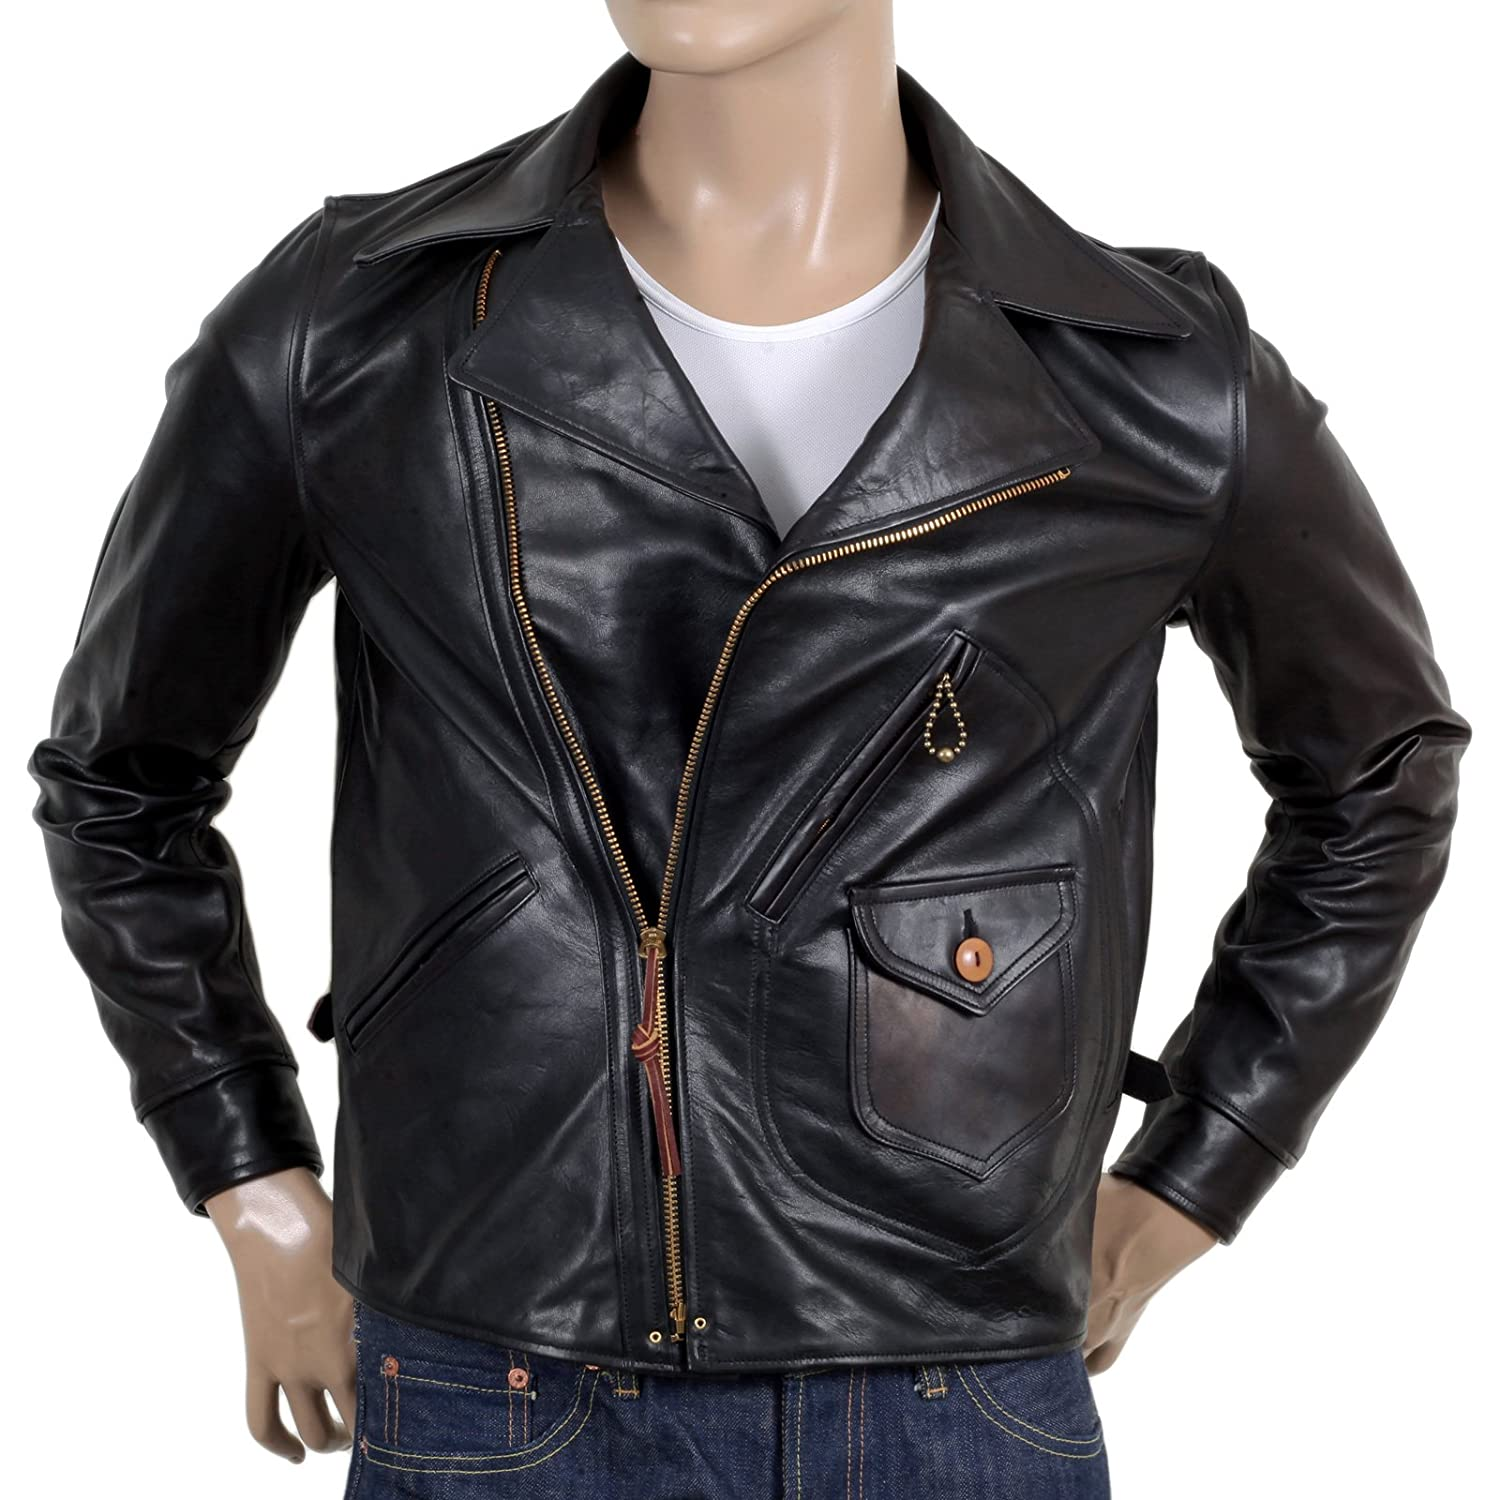 6802ae5a187 Amazon.com  Sugar Cane Mens Leather Black Horsehide Aviator Jacket  CANE5802  Clothing